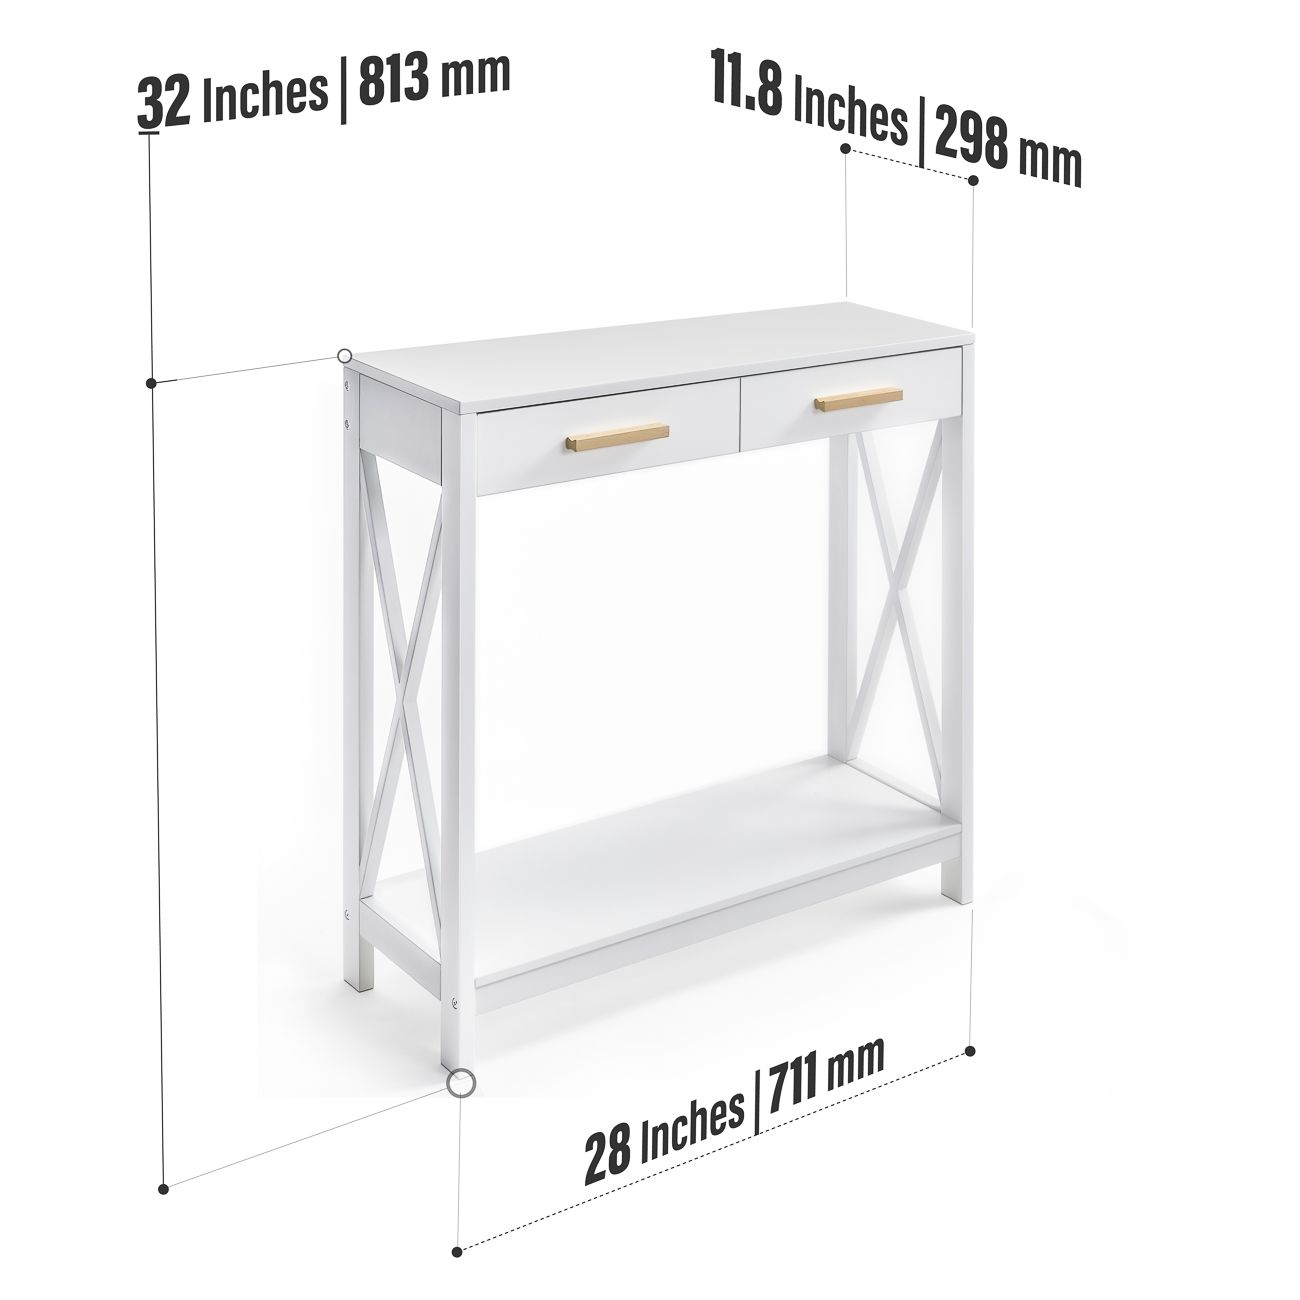 Narrow Sofa Table With Drawers: Modern Entryway Console, Narrow Sofa Table W/ Single